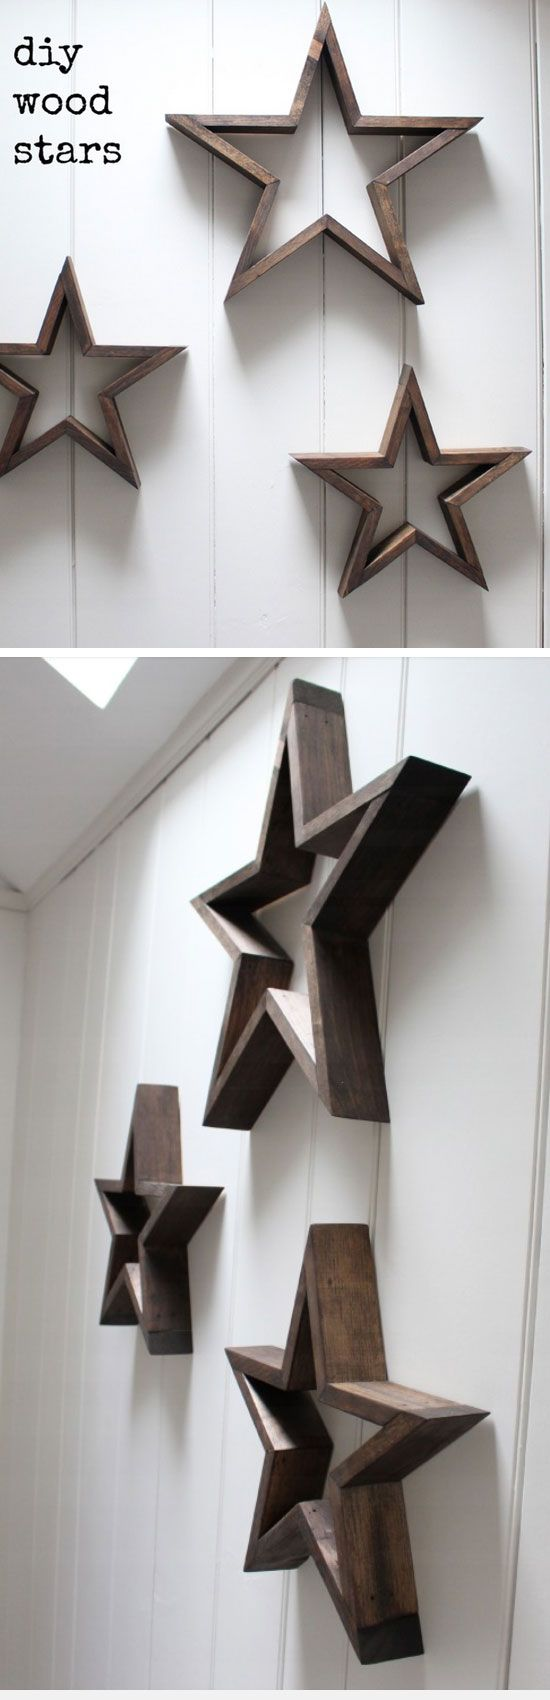 Wooden Stars | DIY Pottery Barn Decor Knock Offs | DIY Pottery Barn Living Room Ideas on a Budget